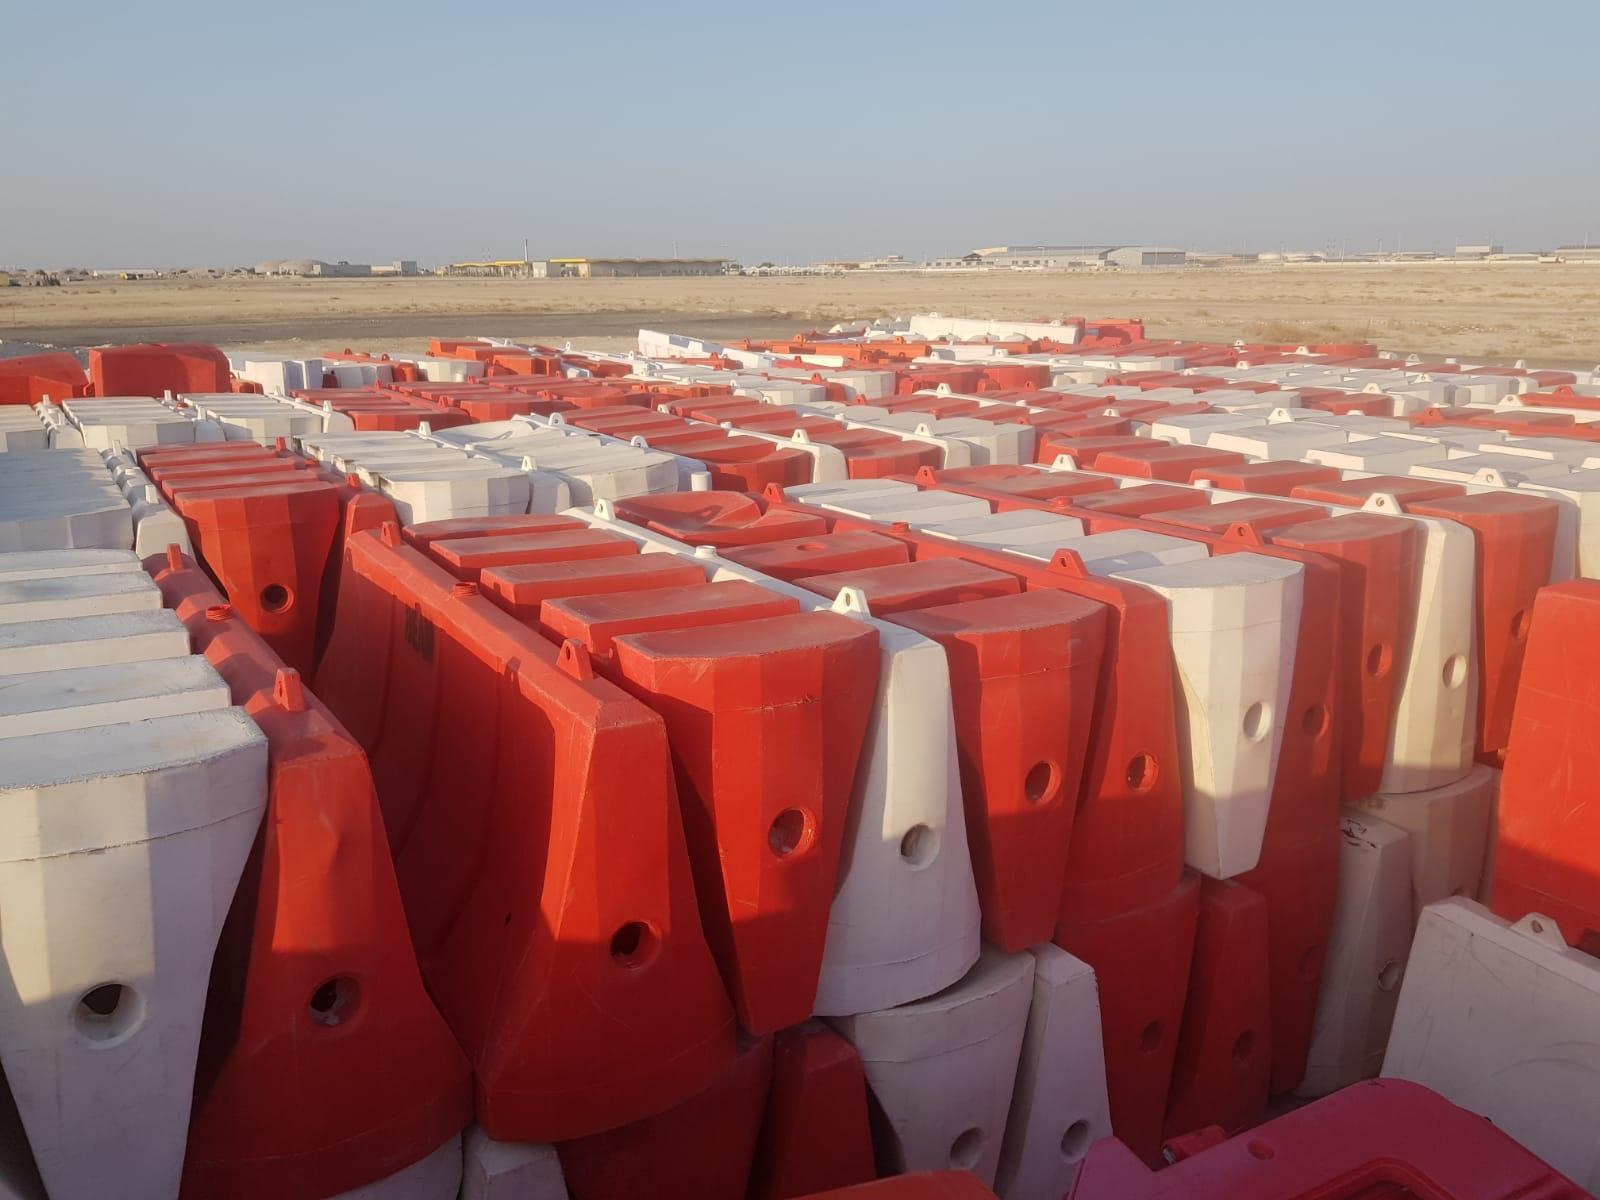 concrete and plastic  barriers  for sale 3.8 meter